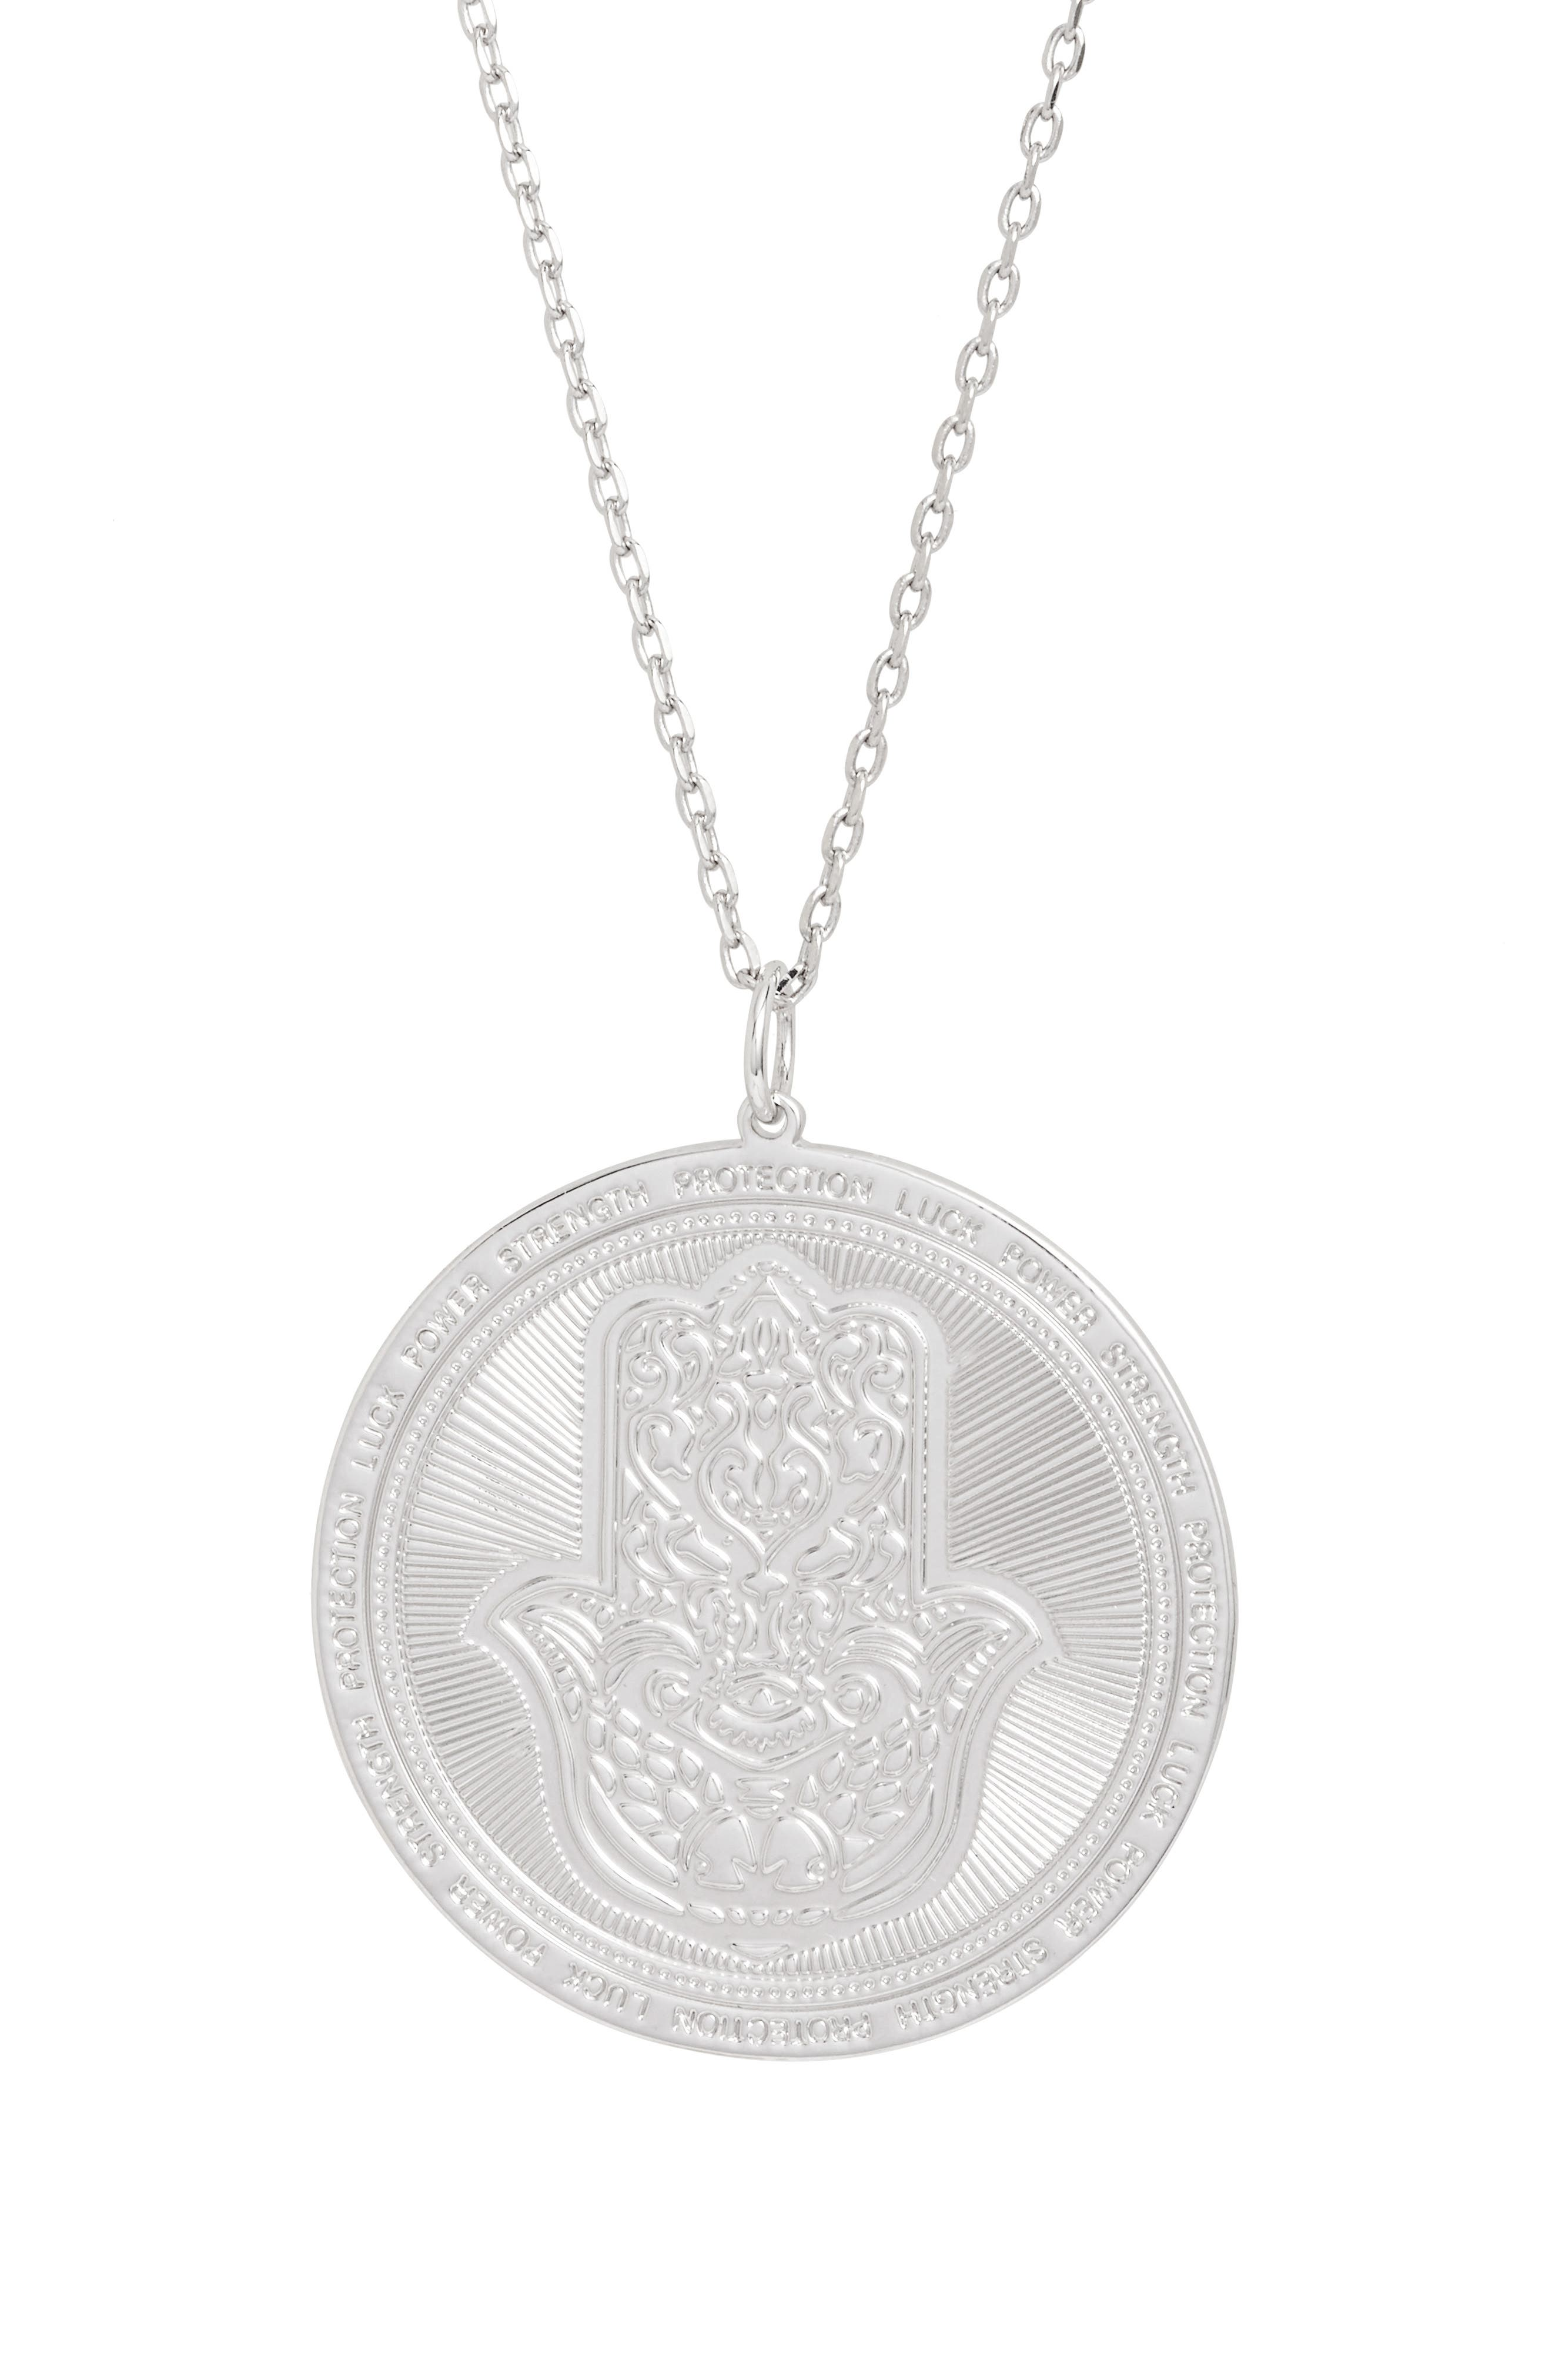 Hamsa Love Letters Pendant Necklace,                             Main thumbnail 1, color,                             046